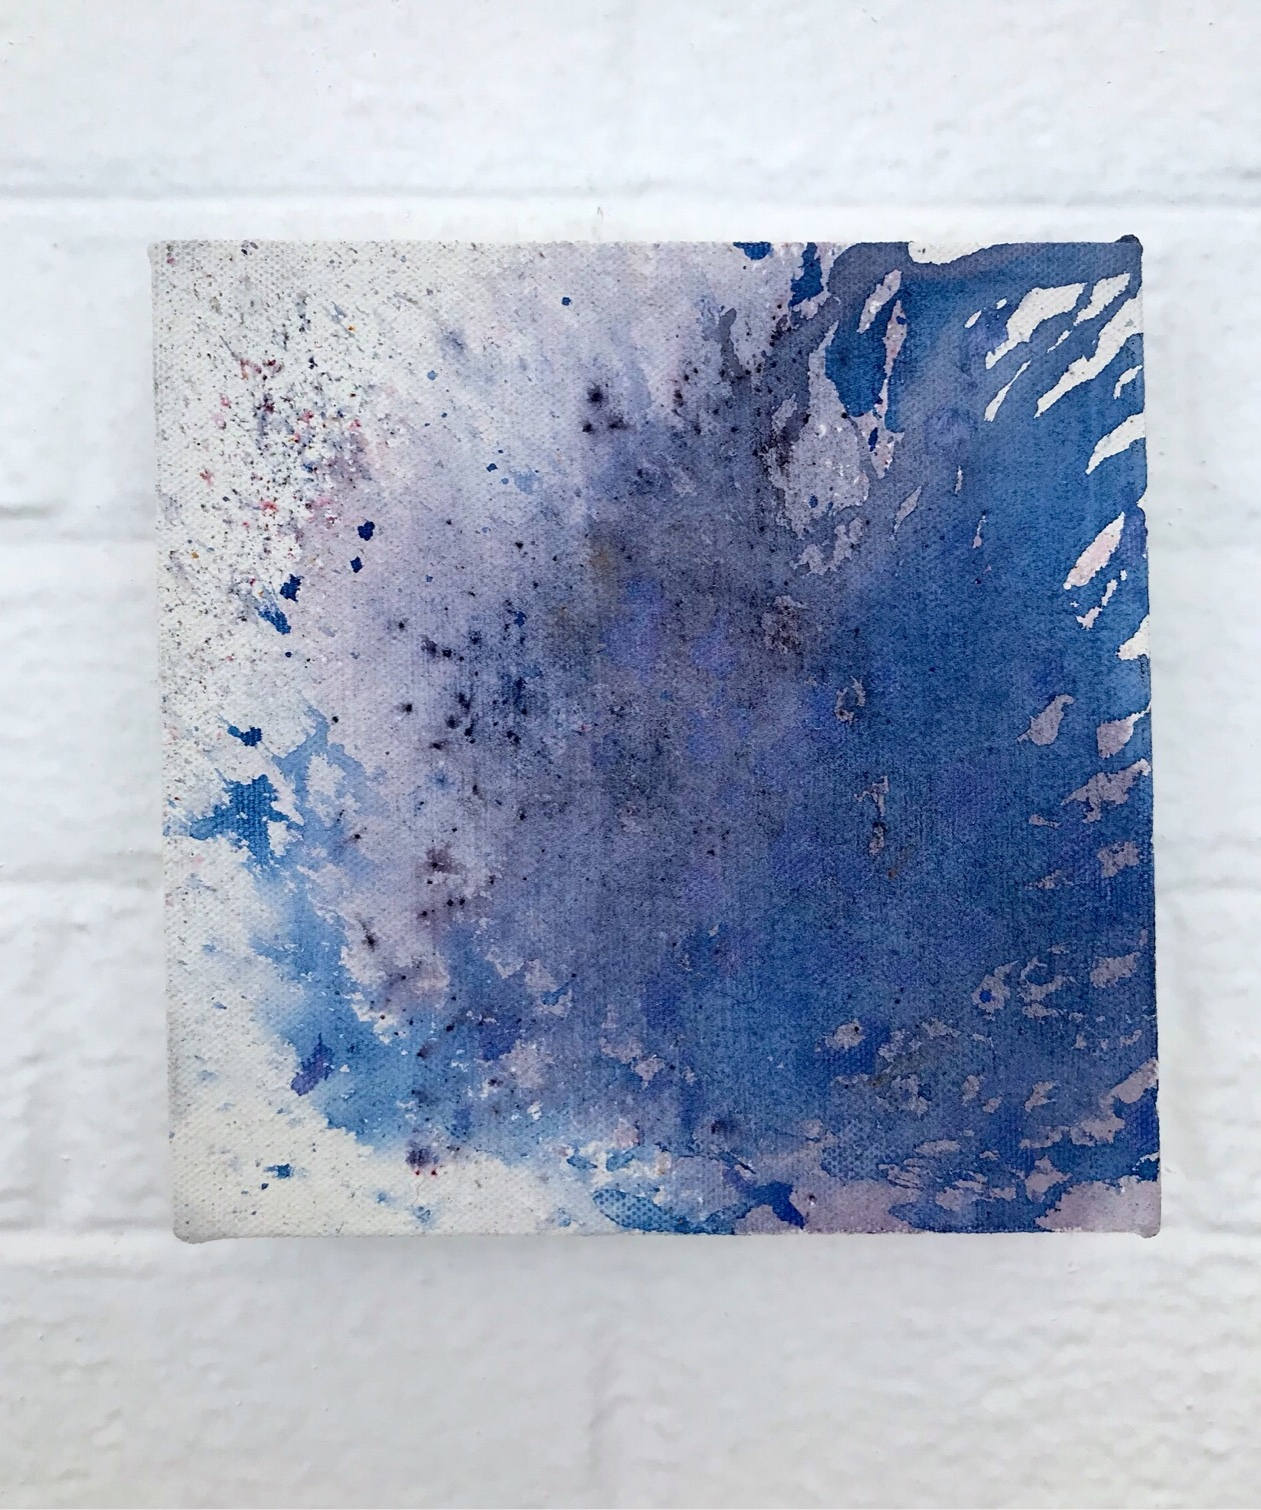 small 7x7 inch painting 2